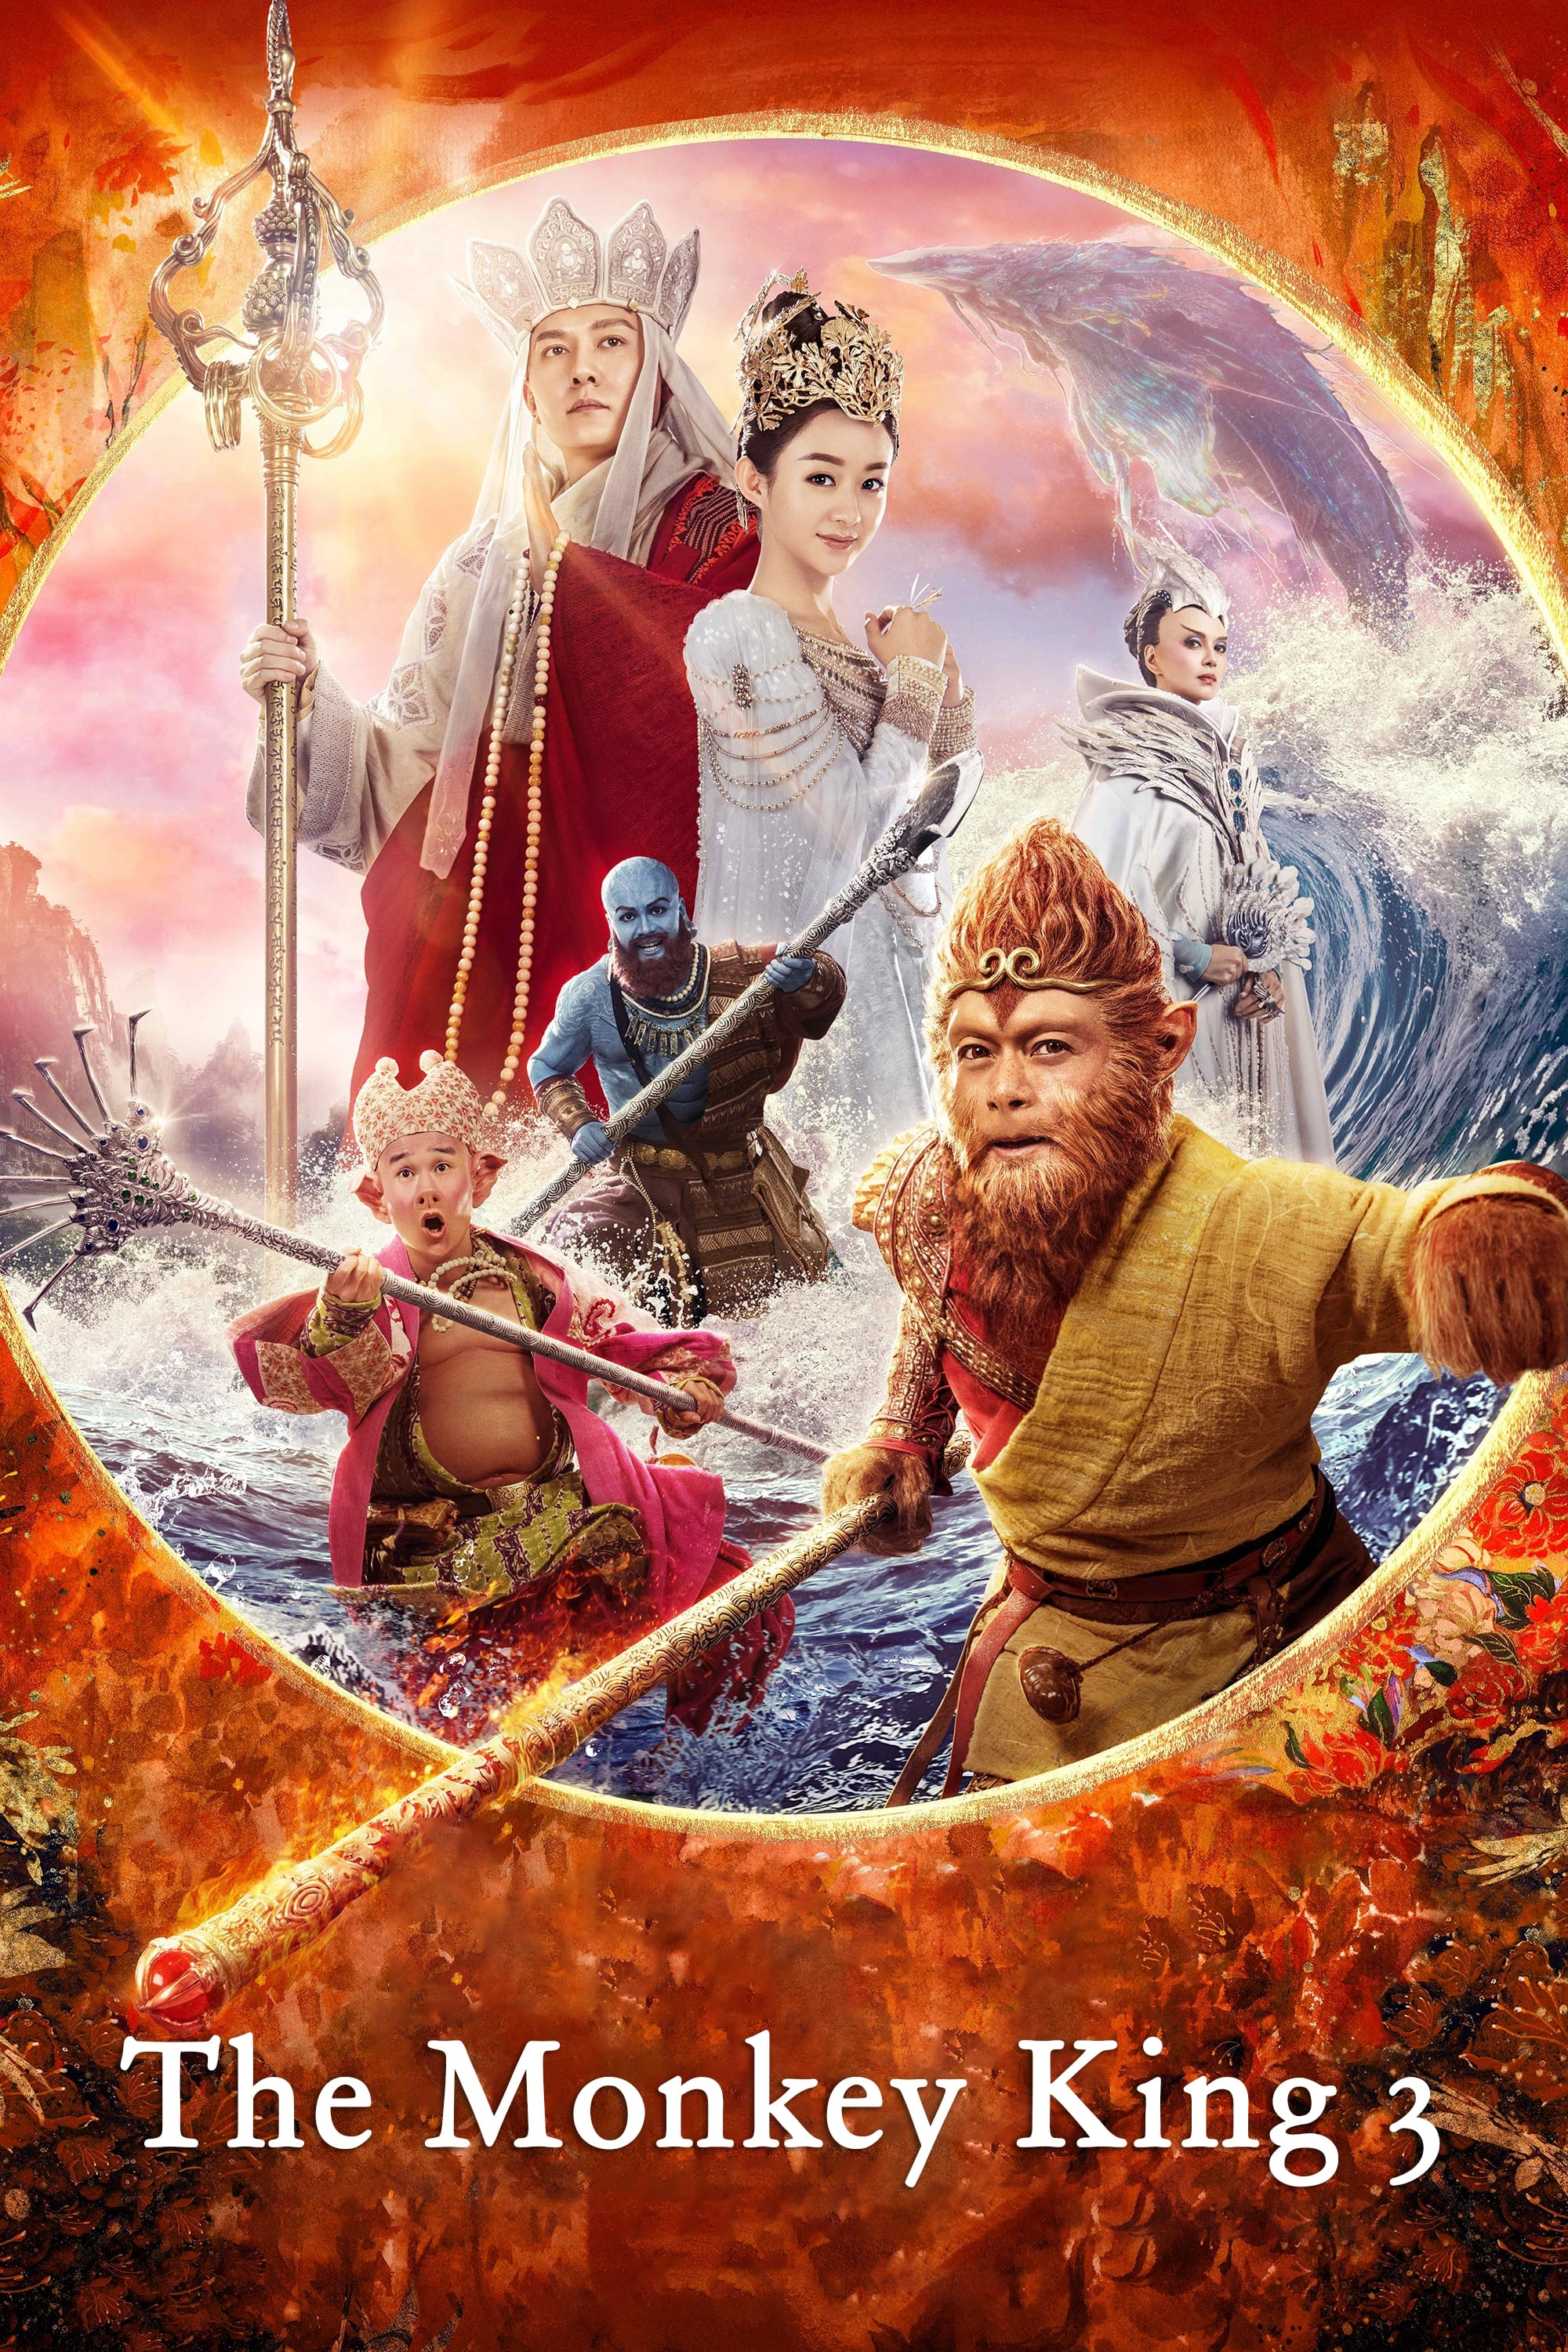 image for The Monkey King 3: Kingdom of Women